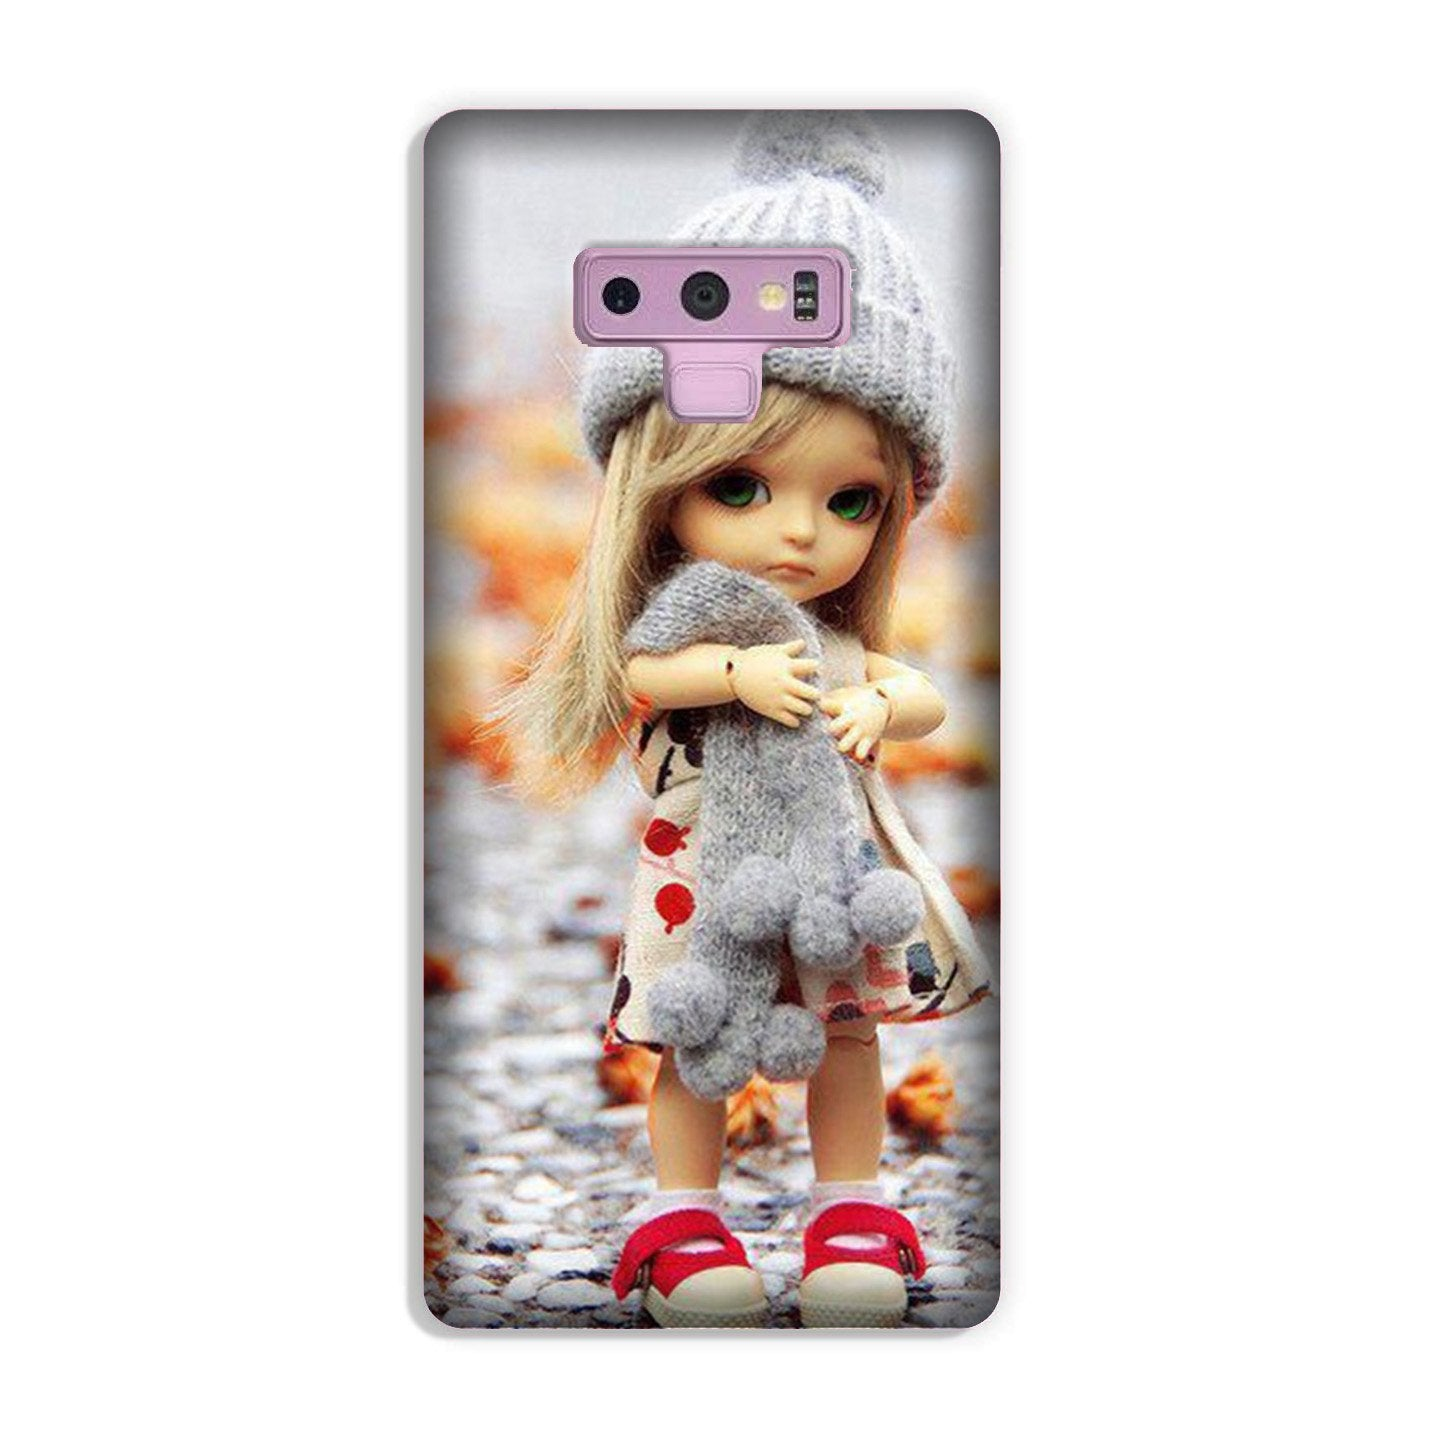 Cute Doll Case for Galaxy Note 9